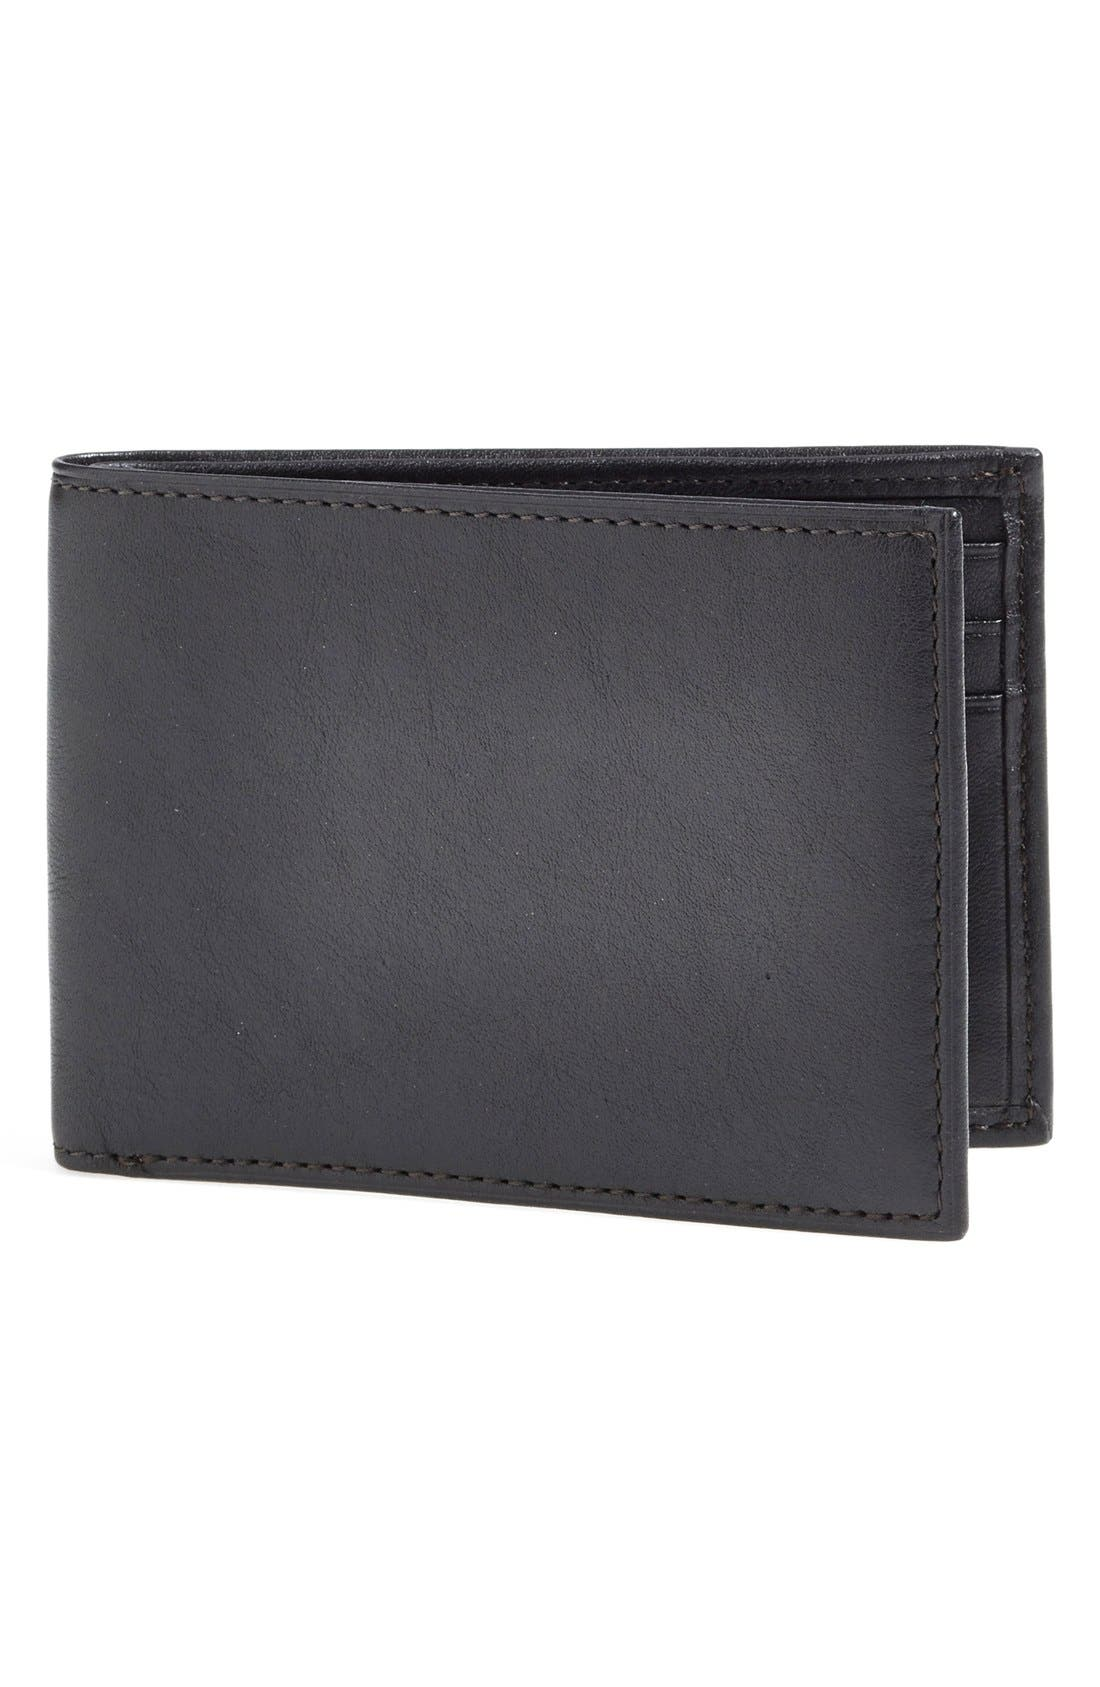 Bosca Small Bifold Wallet